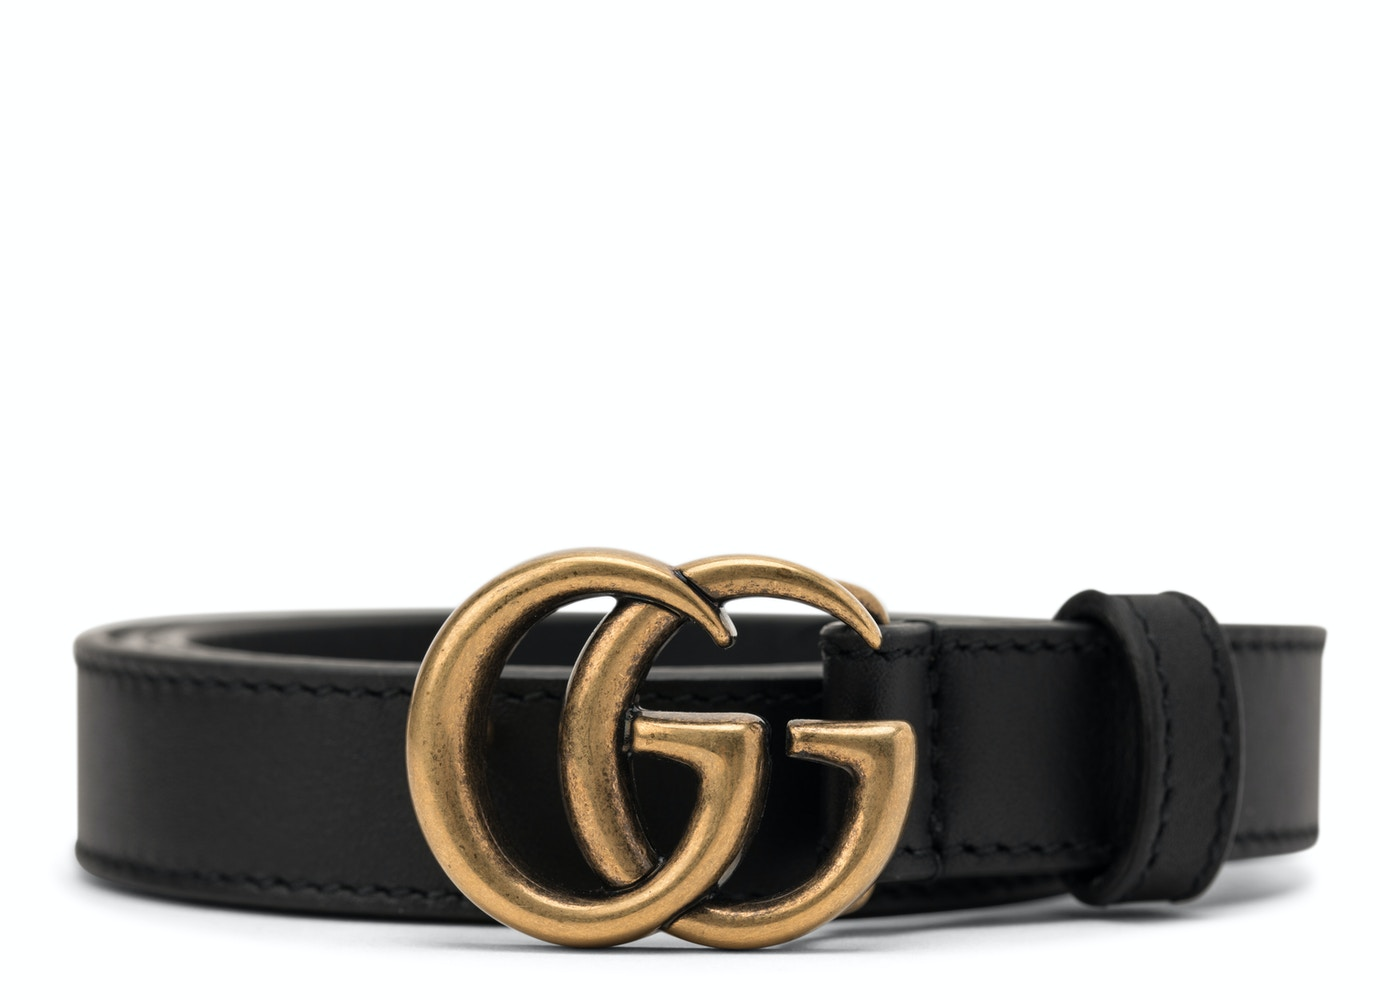 b02464c328dec Gucci Double G Buckle Leather Belt 1.5 Width 80-32 Black